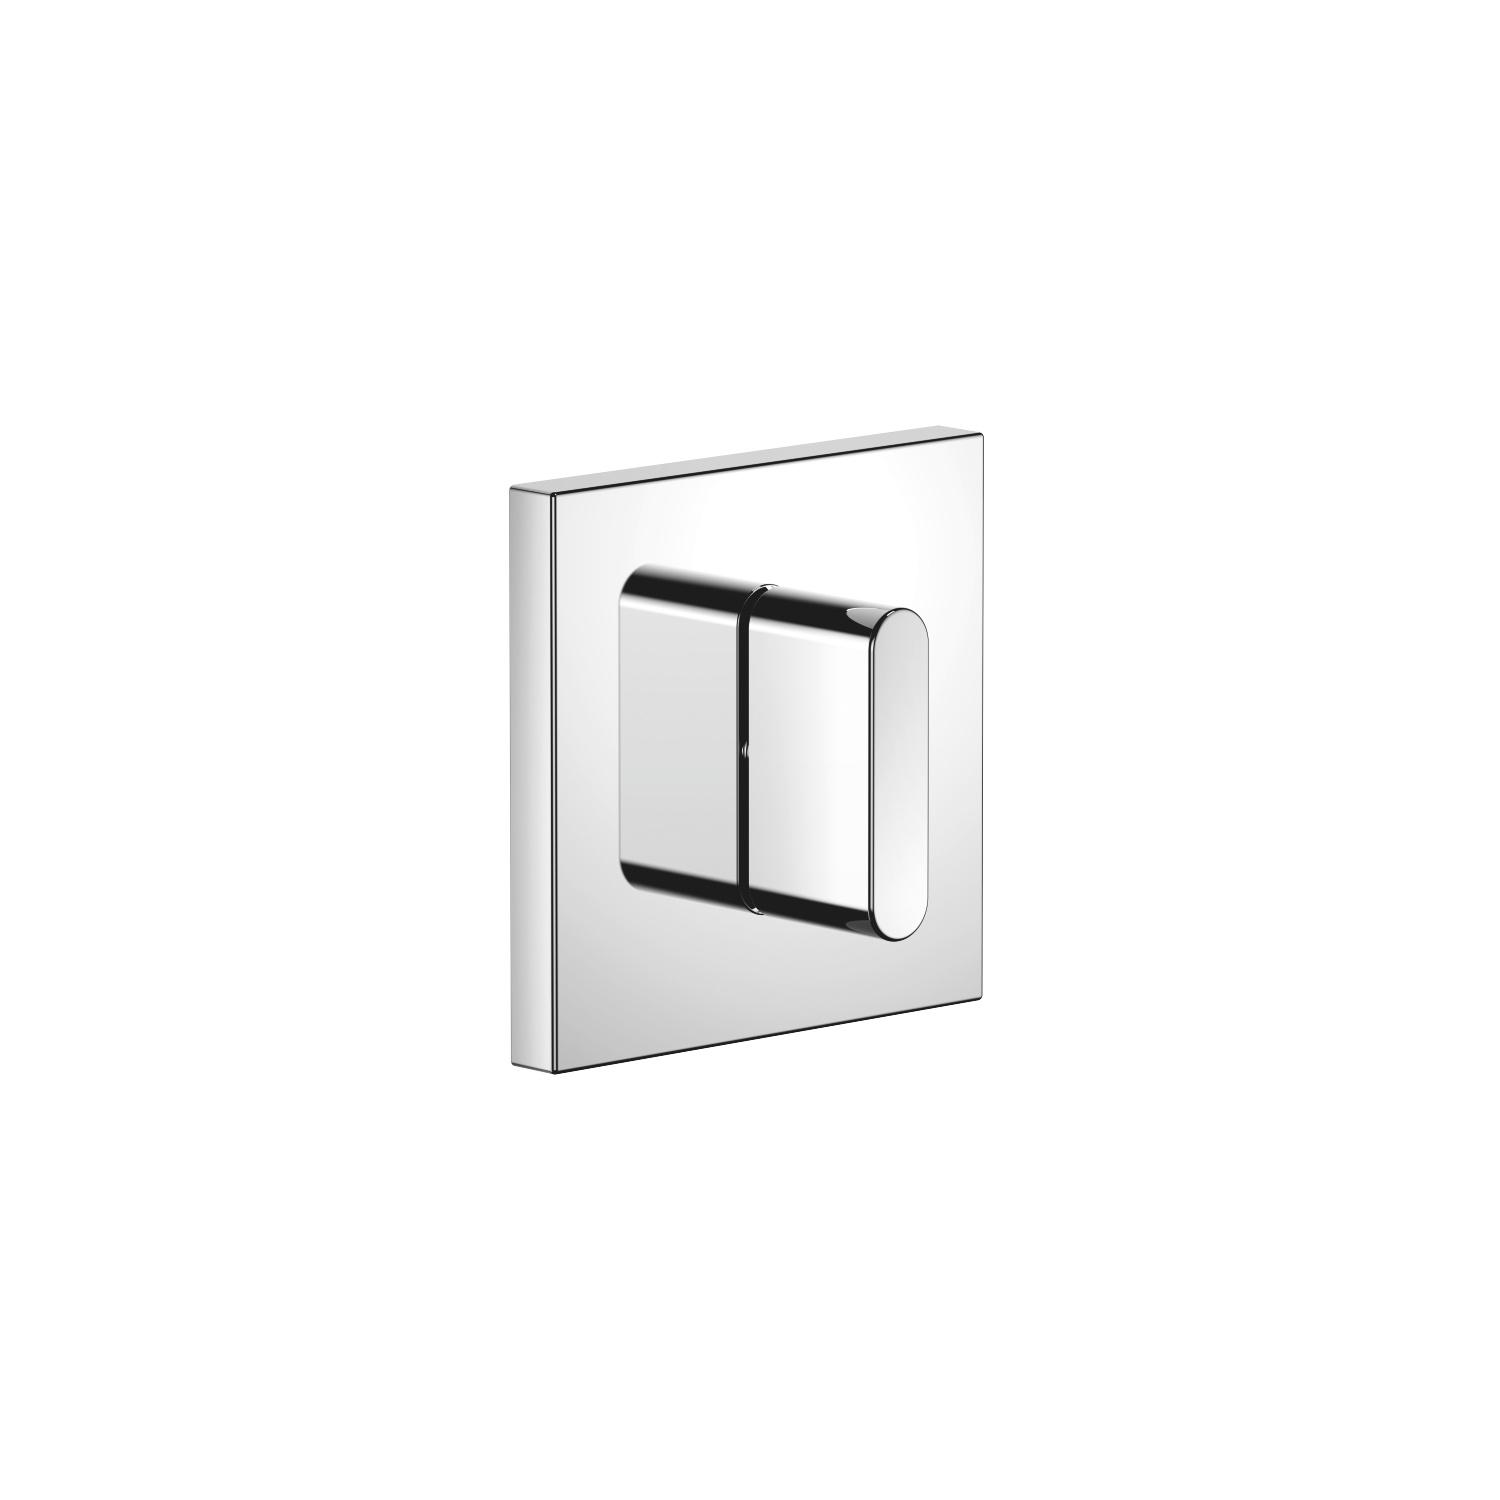 Concealed two- and three-way diverter - polished chrome - 36 104 705-00